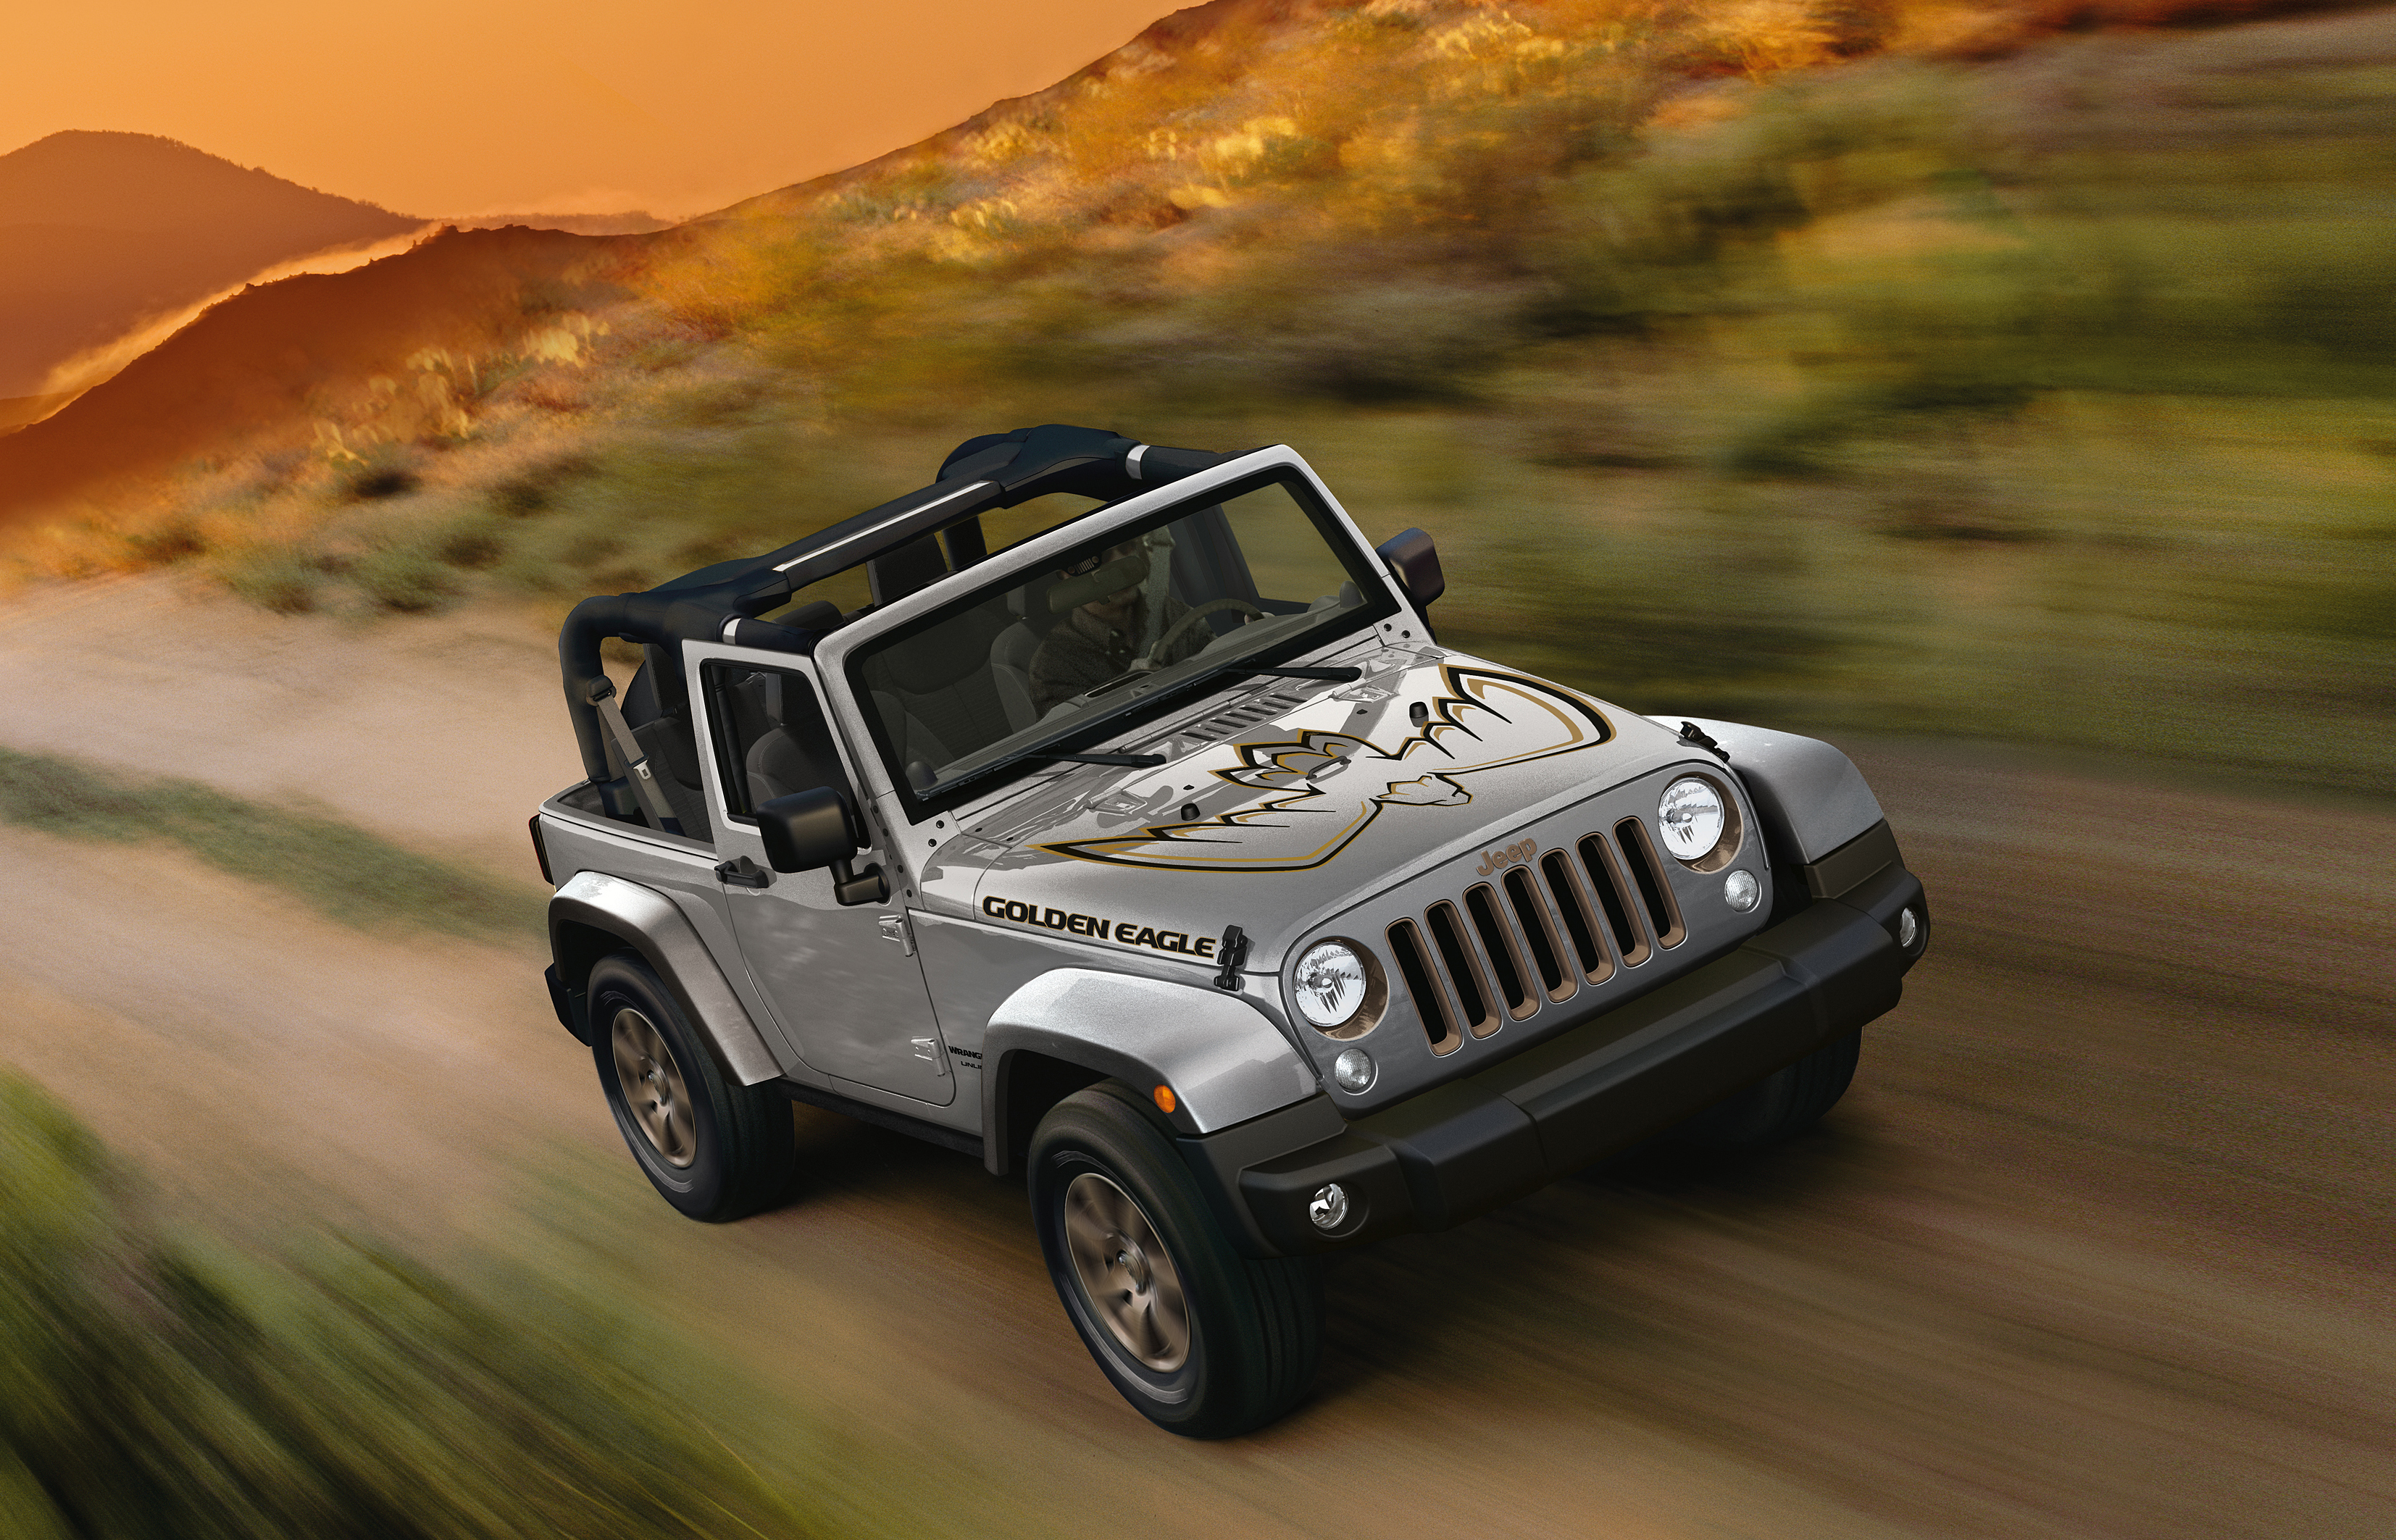 Jeep Wrangler Golden Eagle Exterieur